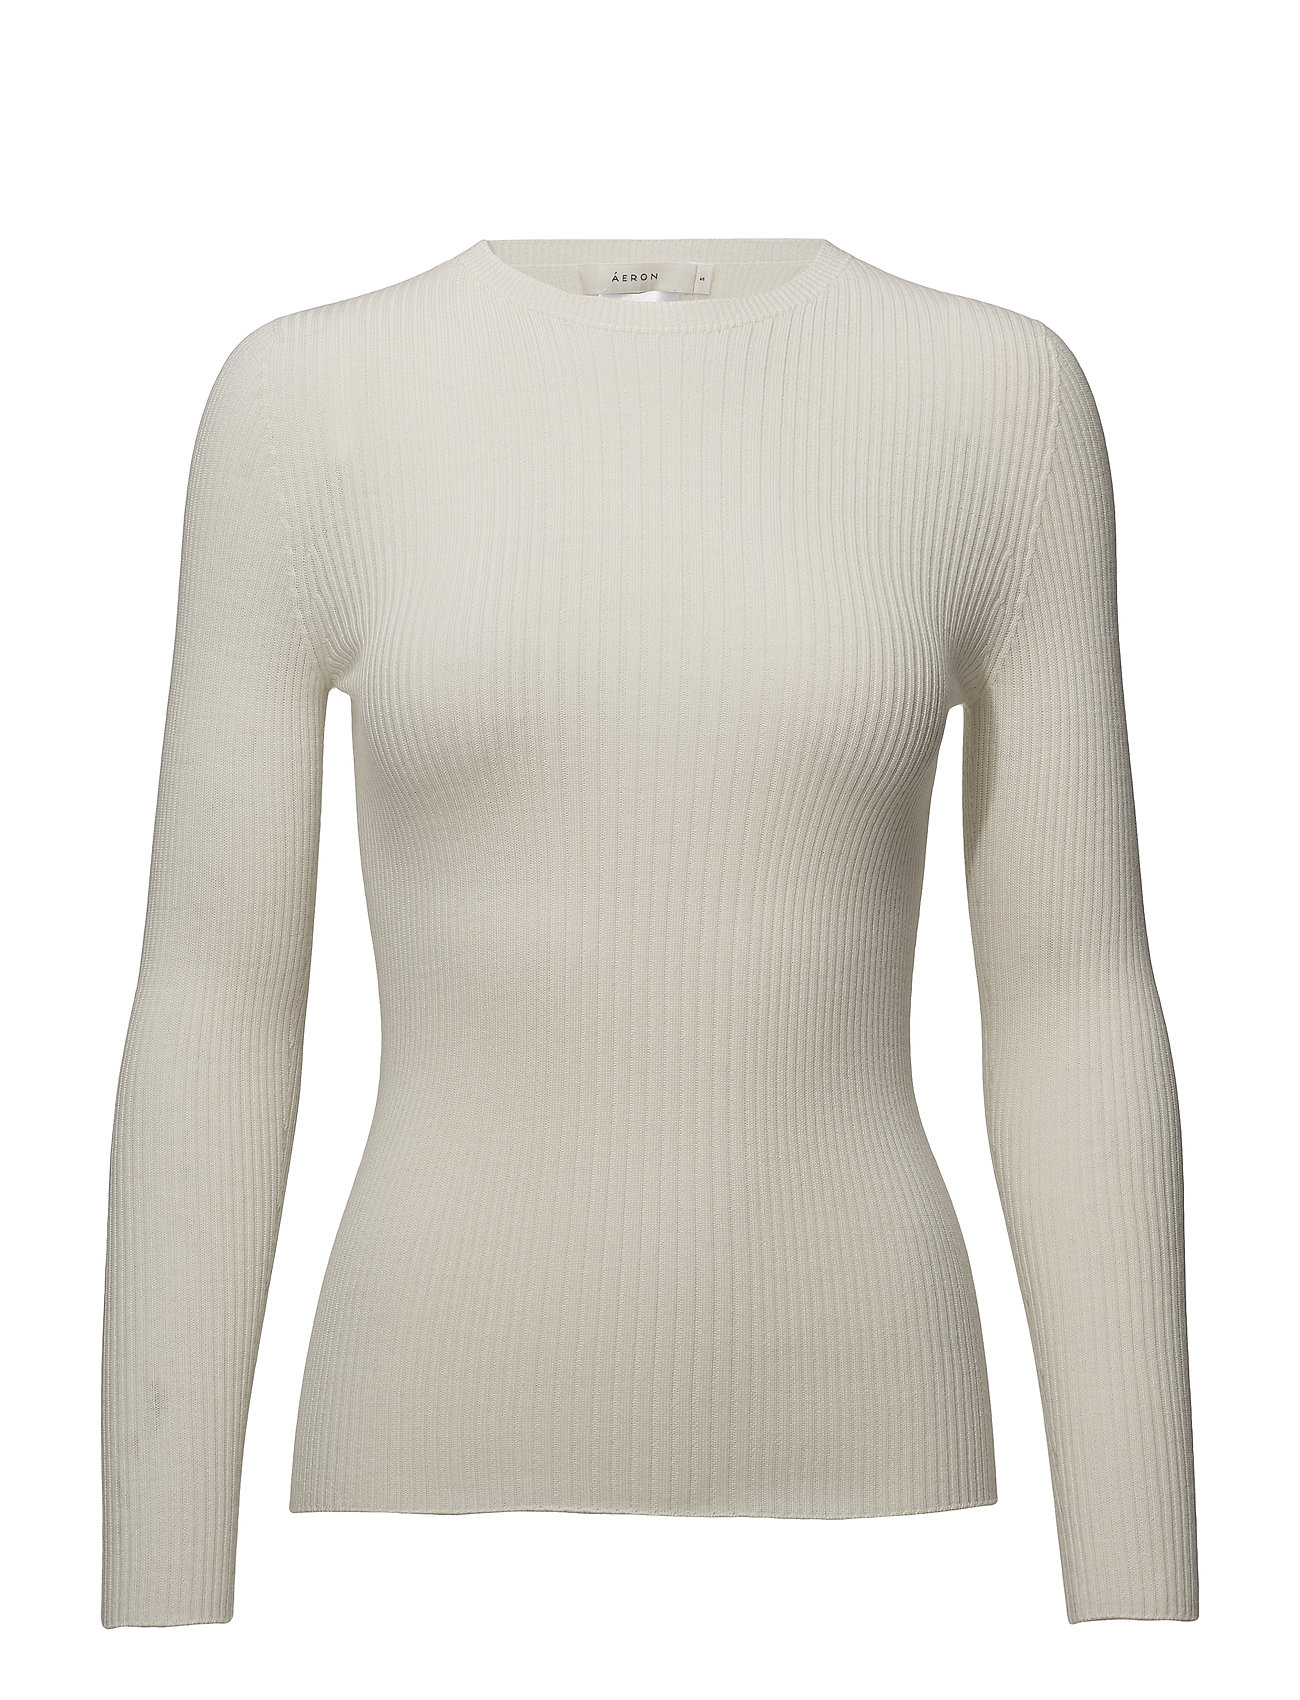 ÁERON ribbed slim knit top - CREAM